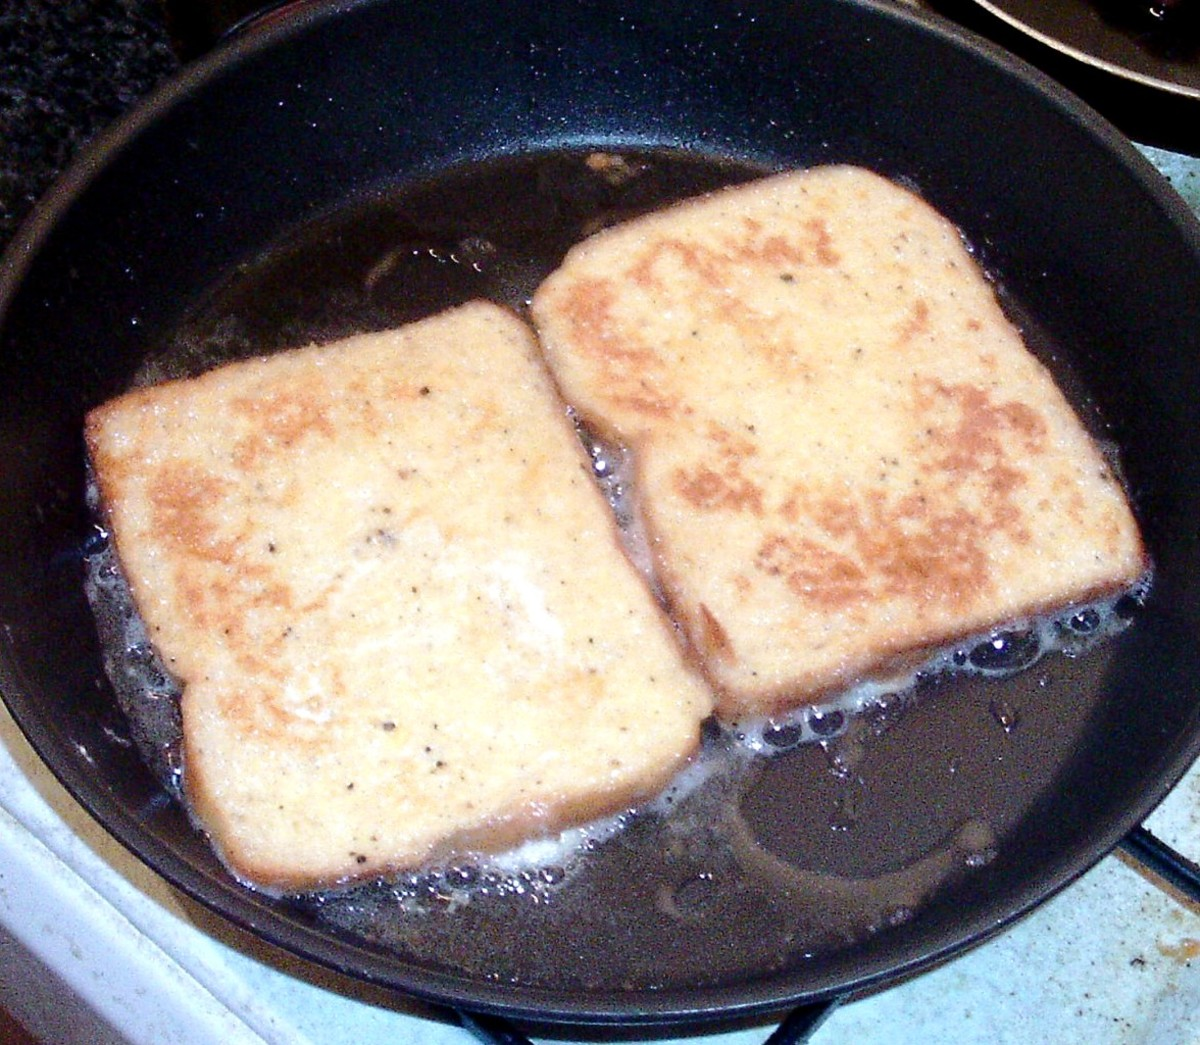 Eggy bread is turned to fry on second side